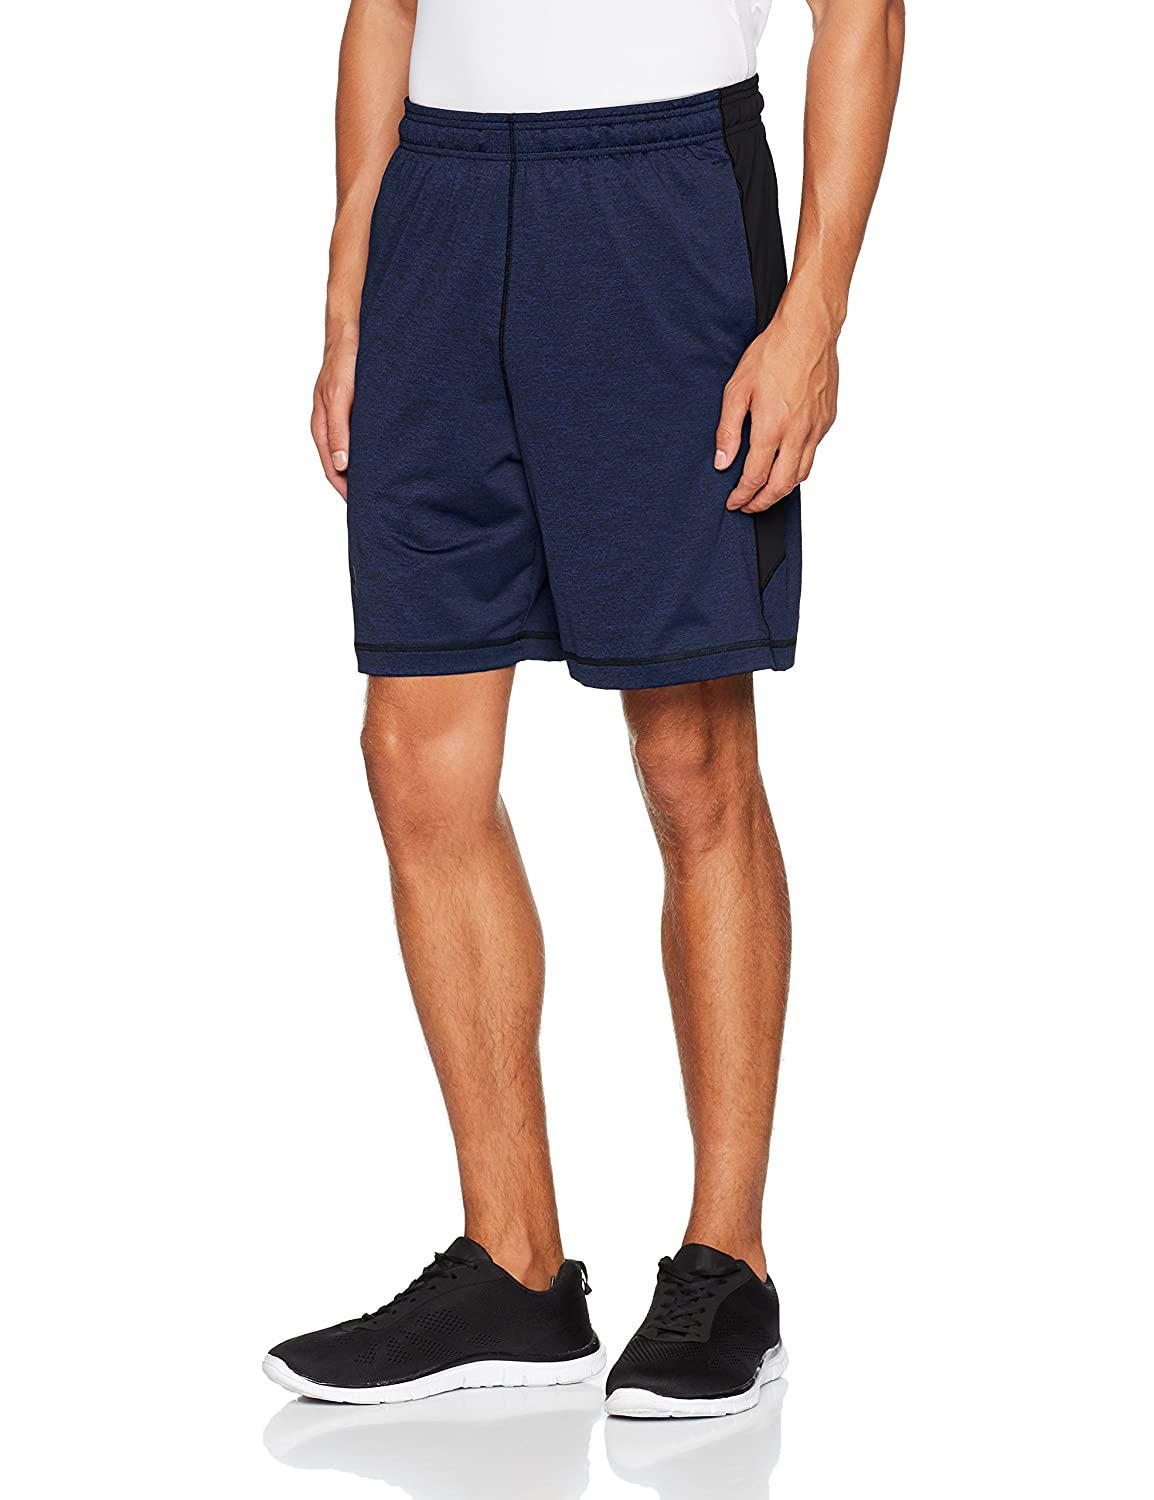 Under Armour UA Raid 8 Novelty Short Pantaloncini Uomo